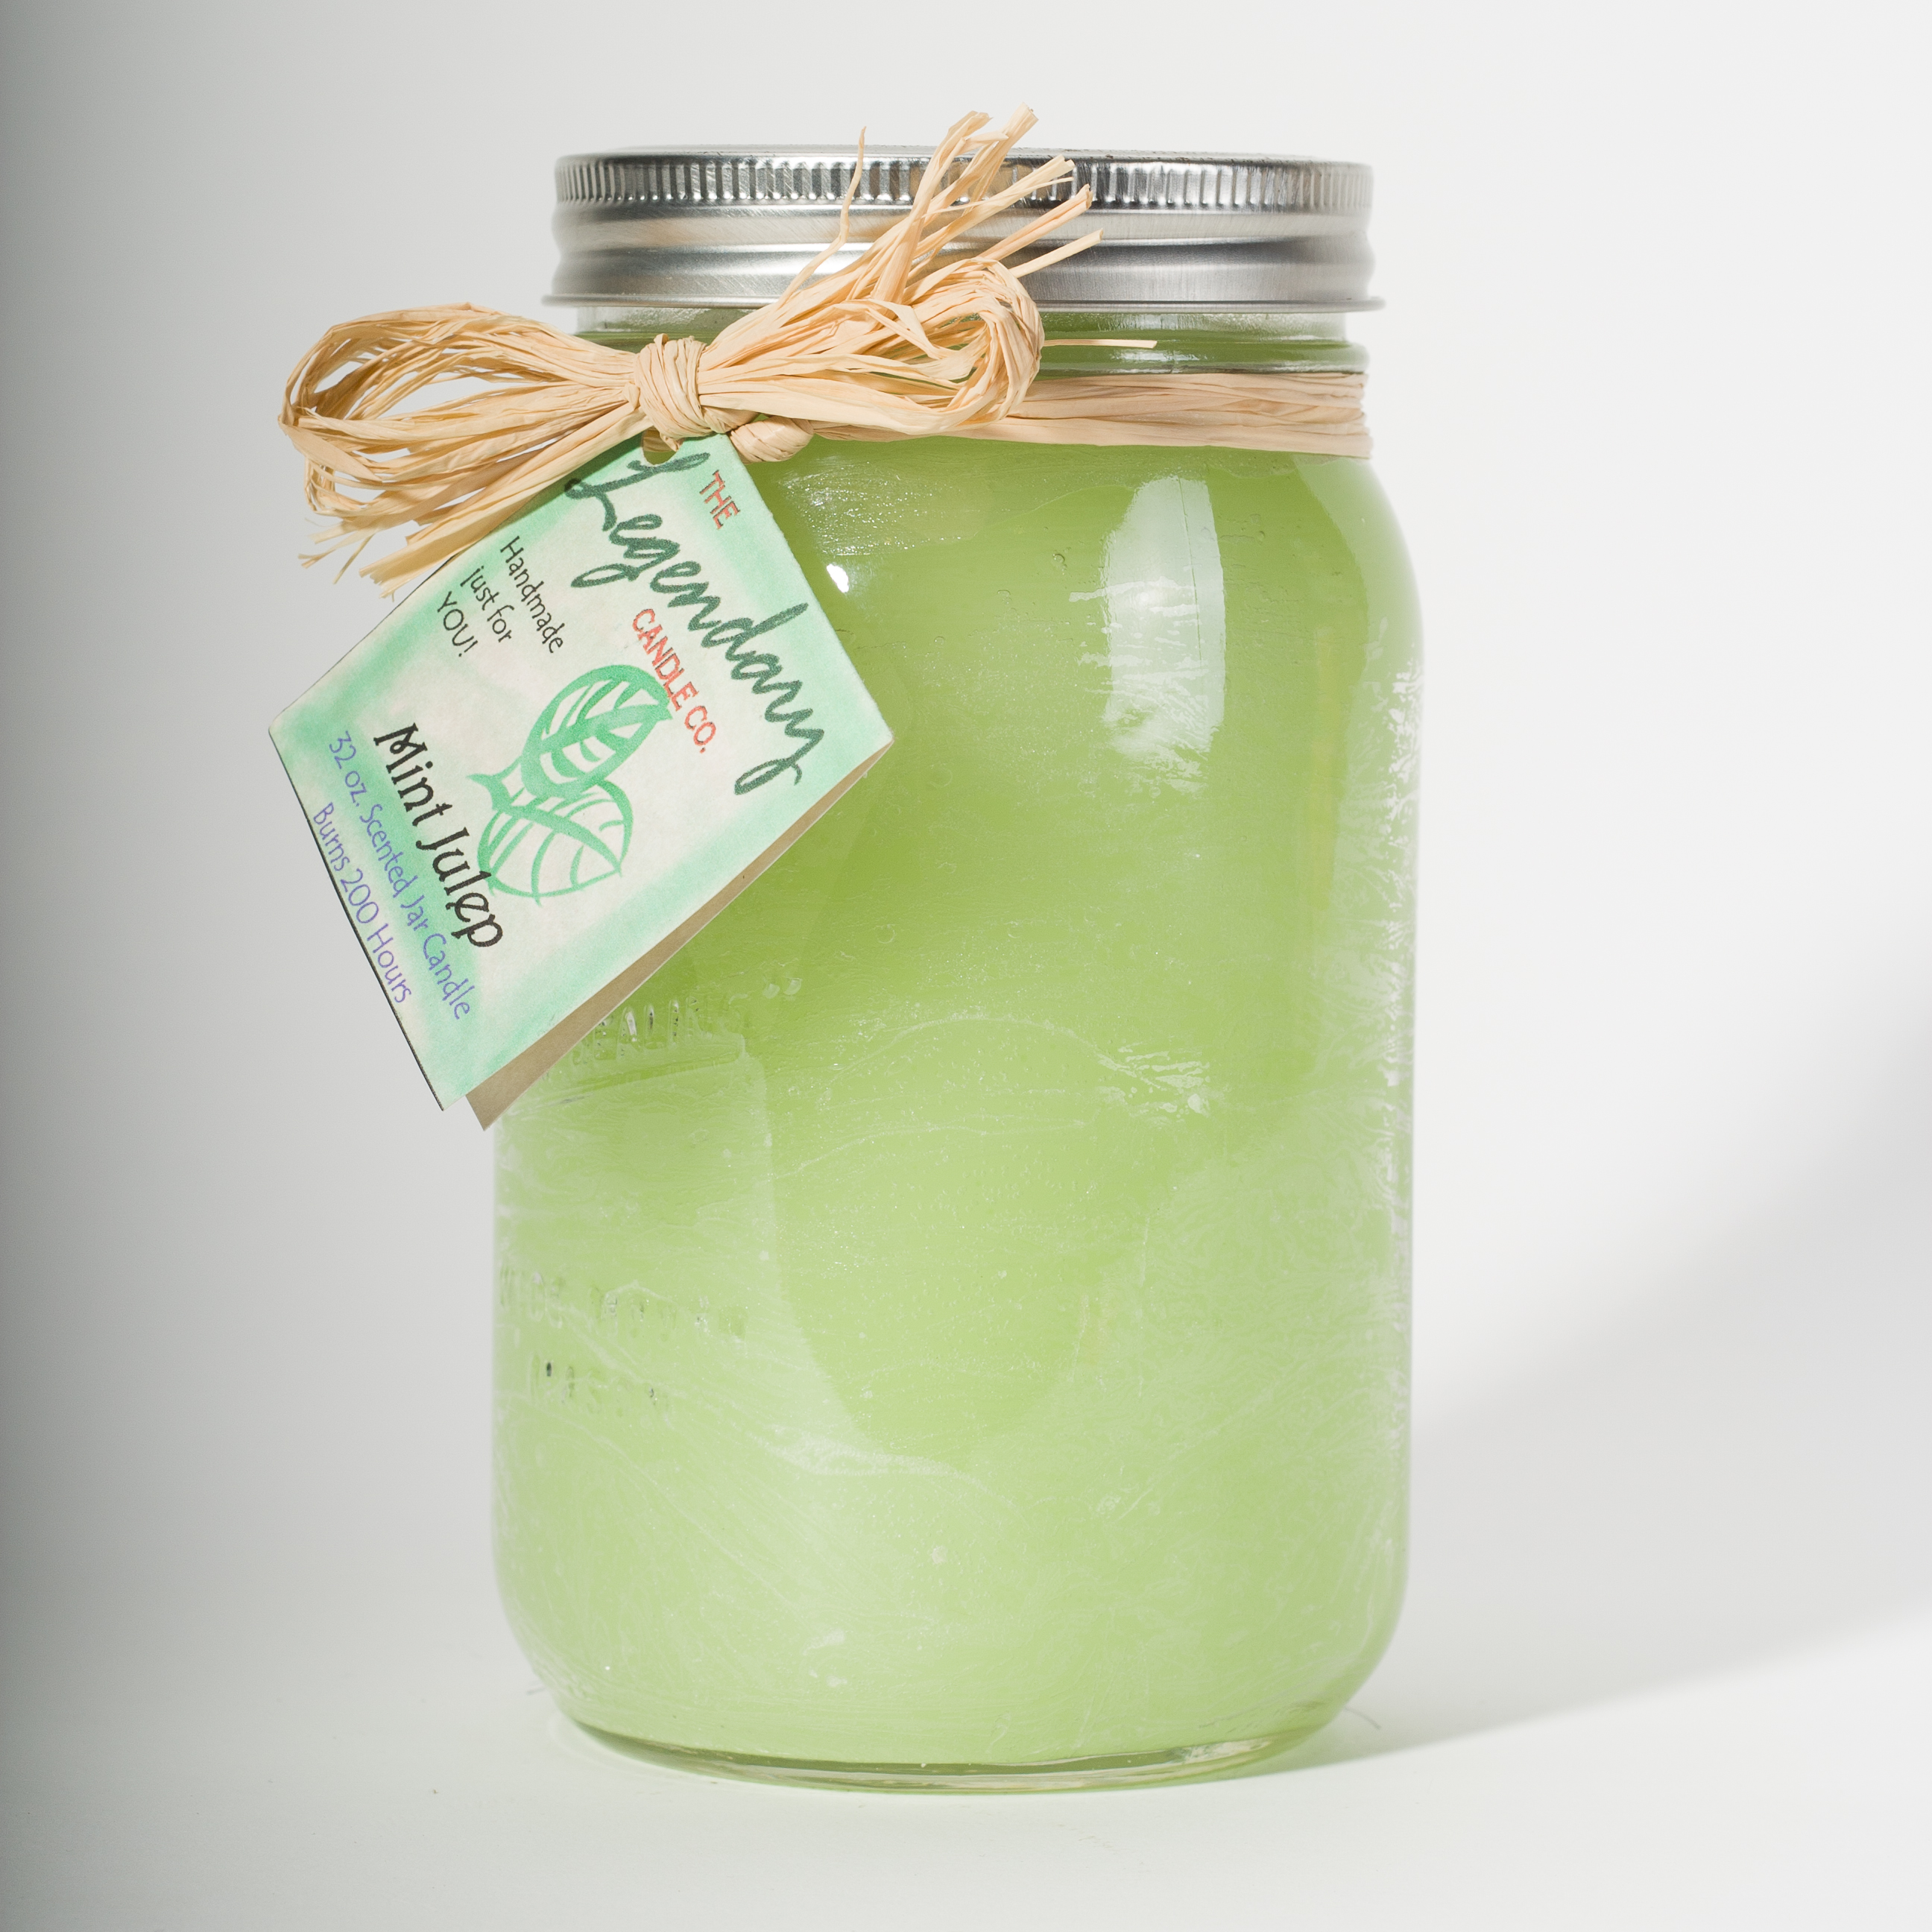 32 Ounce Mint Julep Scented Mason Jar Candle